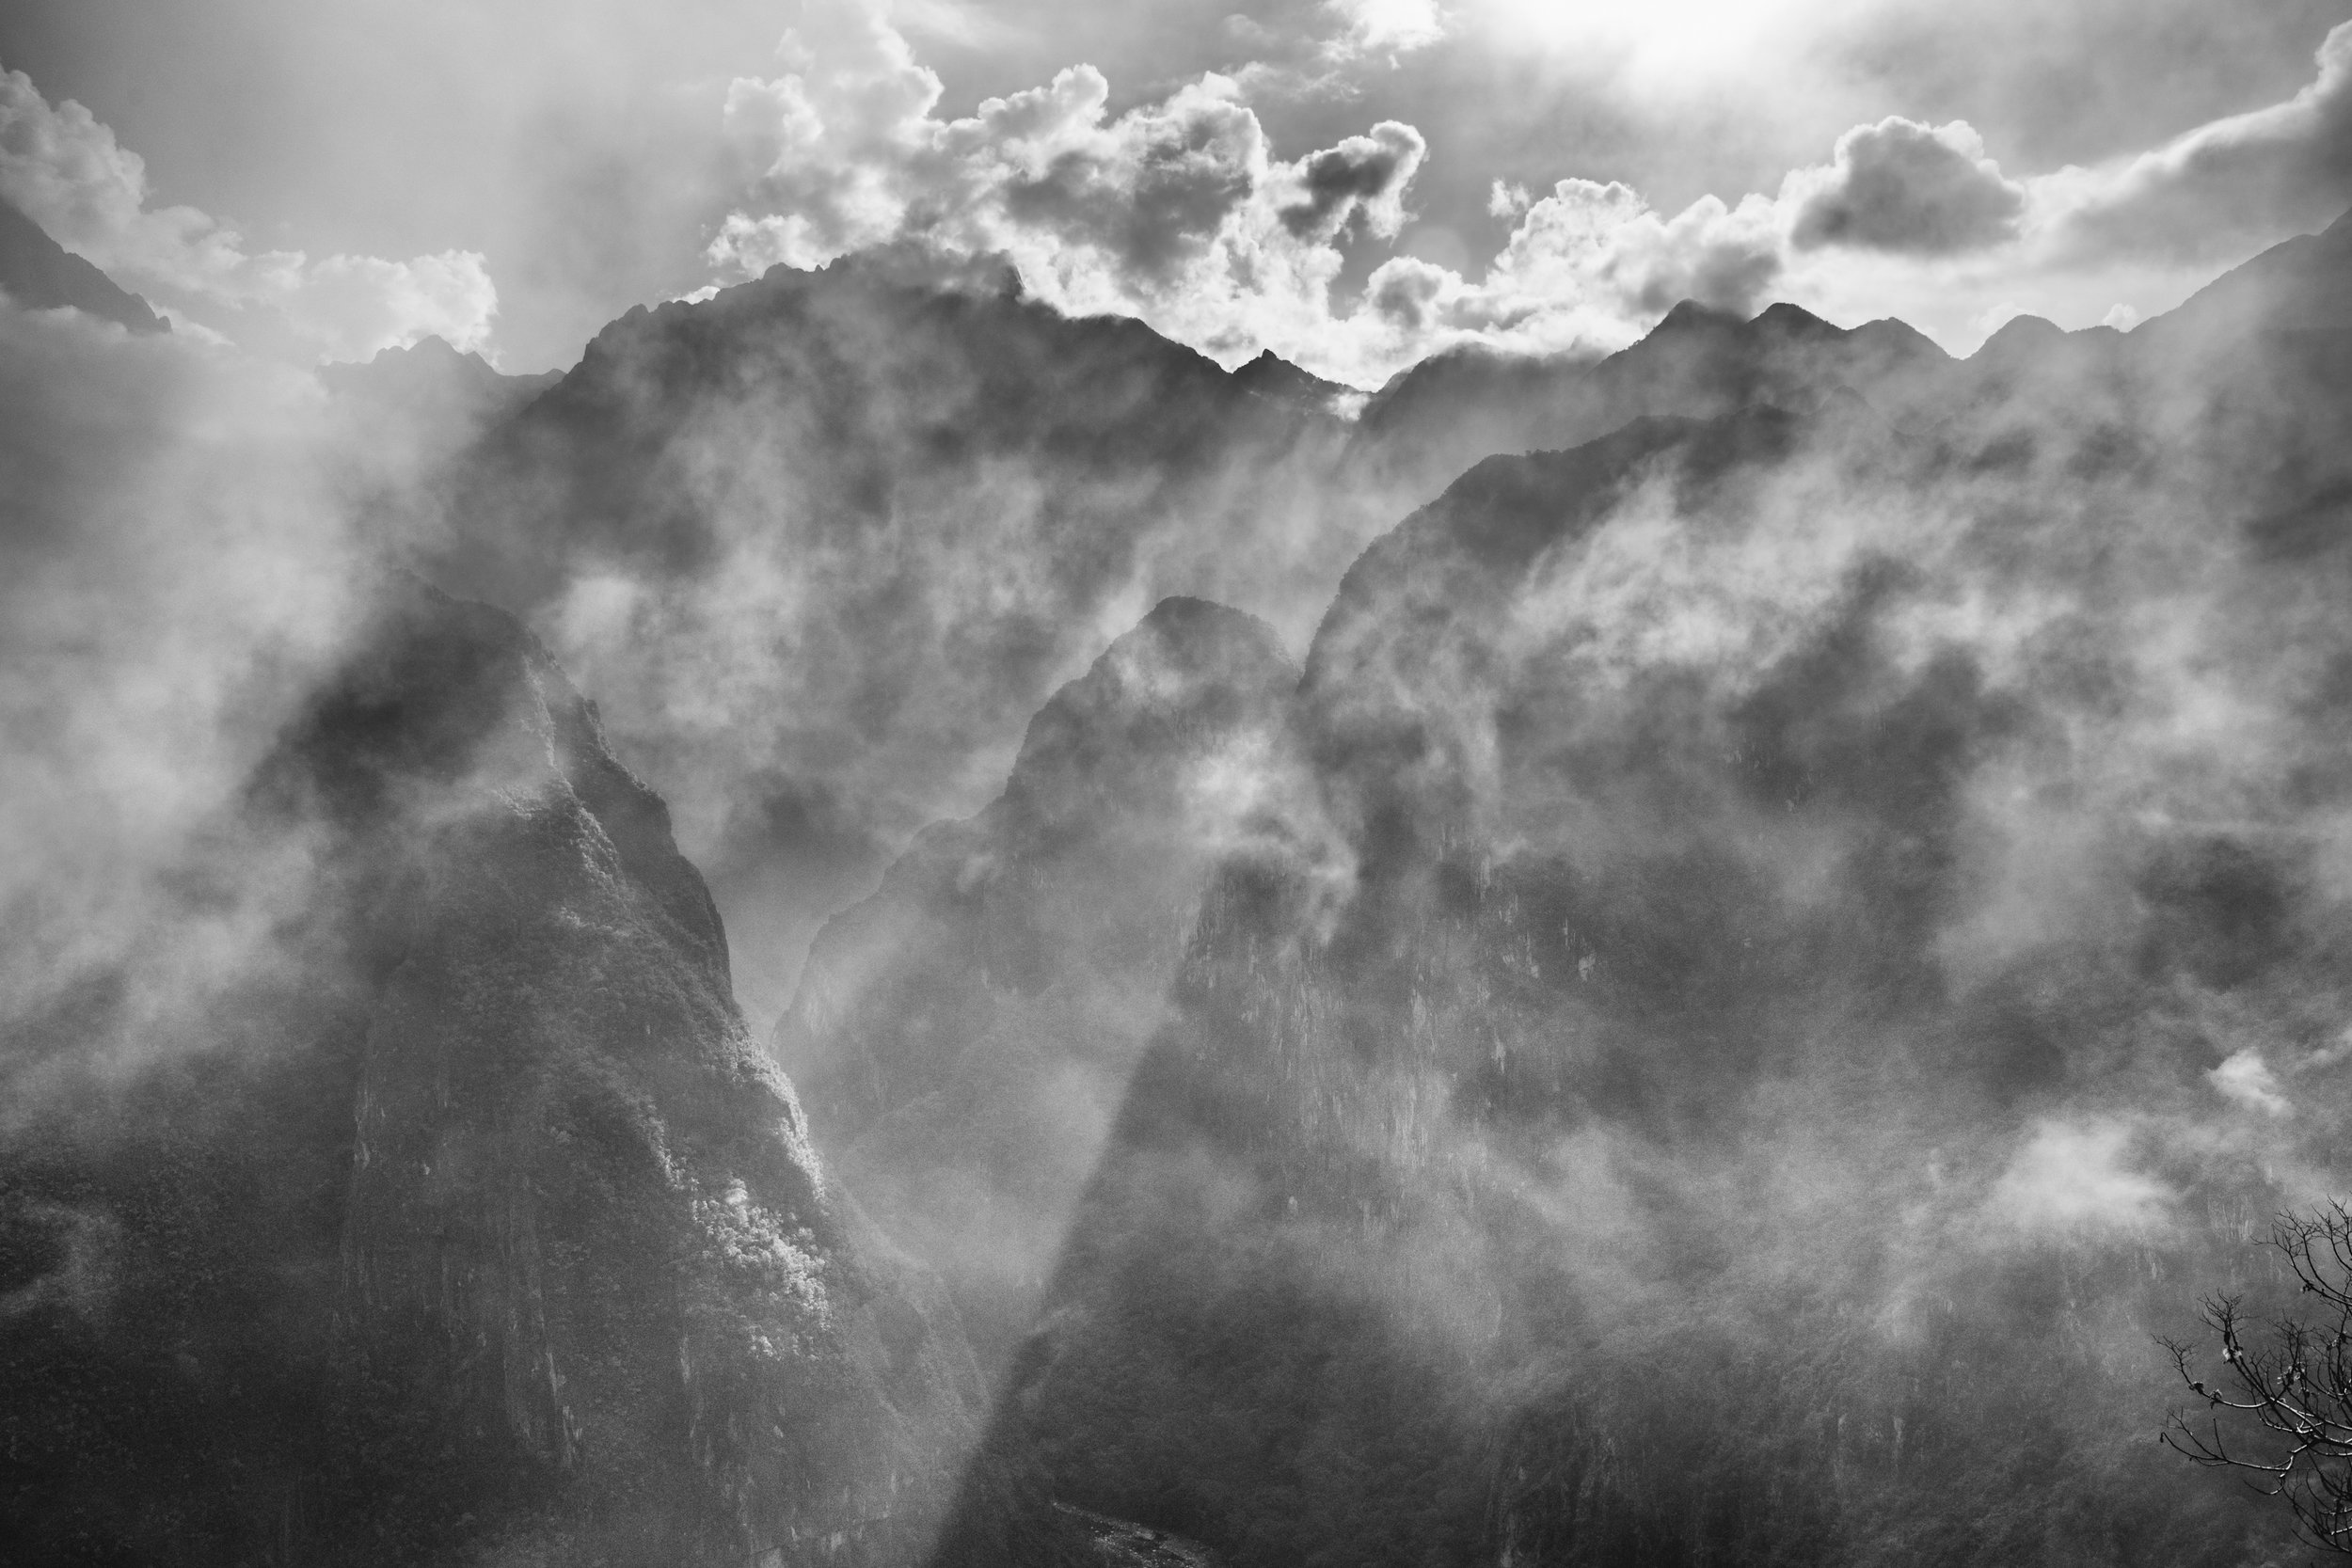 Andes in Mist